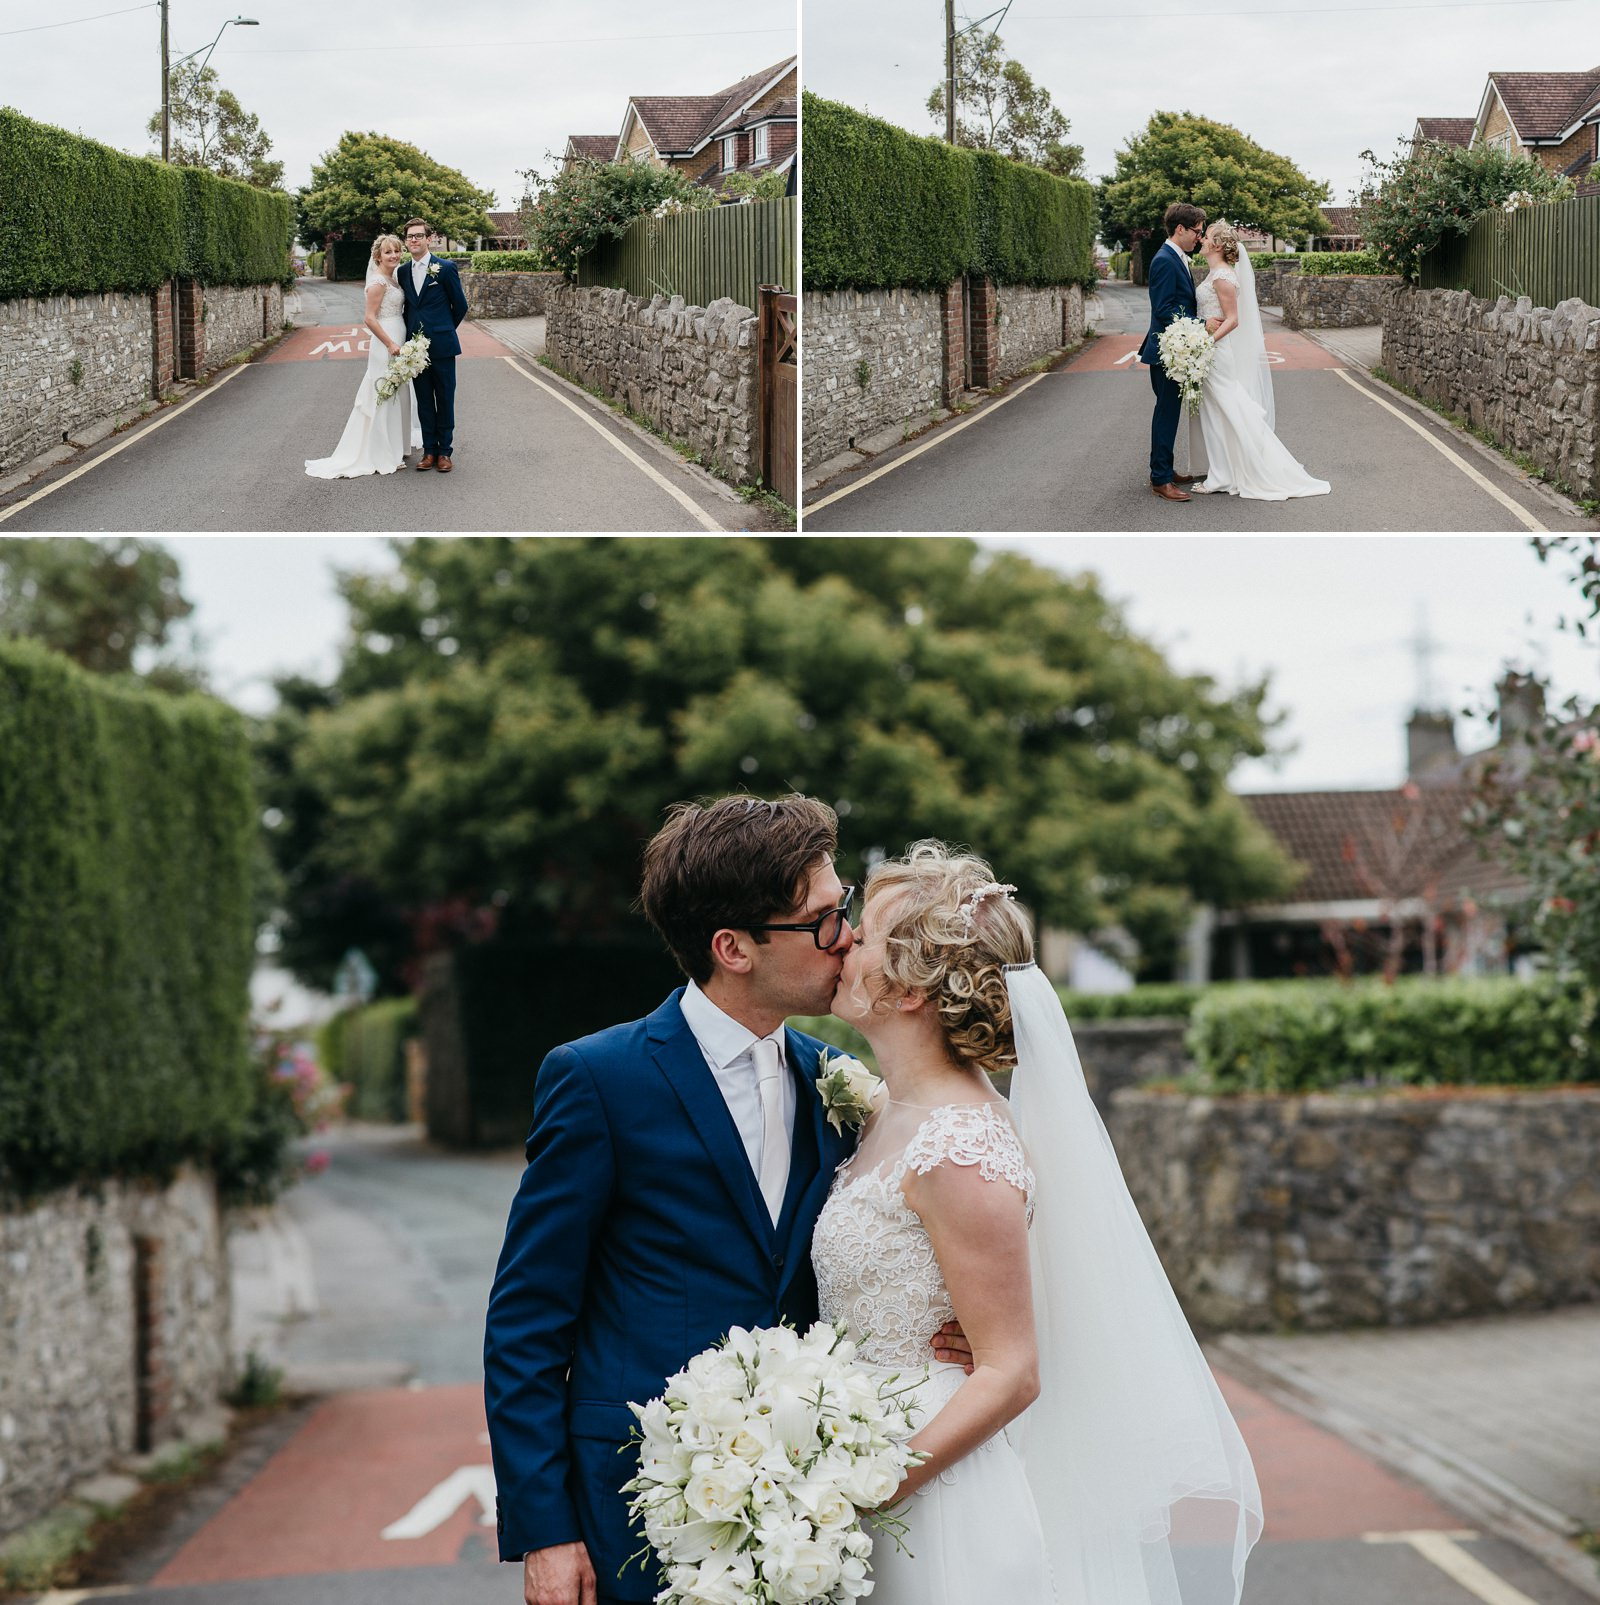 Bride and groom portraits, relaxed wedding photographer, Bridgend